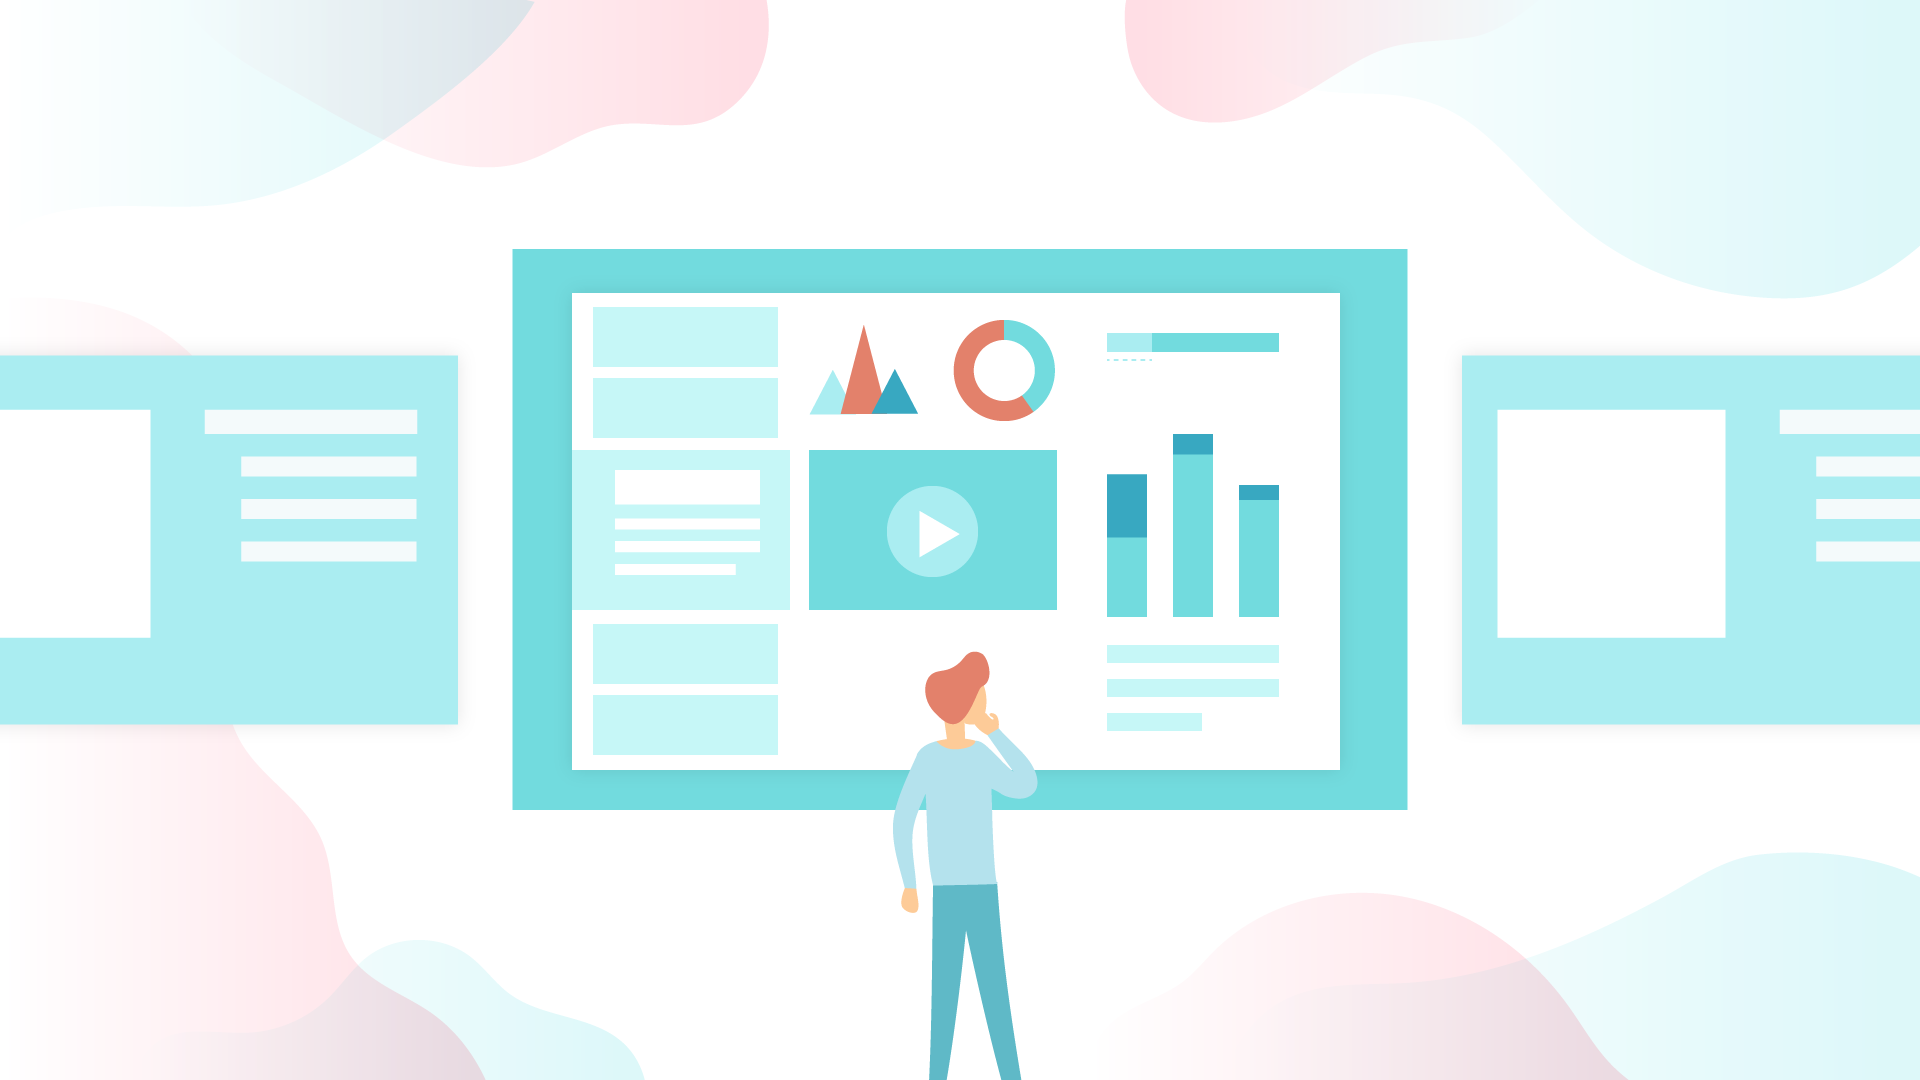 D:\paresh\articles date wise\29-01-2019\8-ways-to-click-with-your-audience-through-visual-content.png